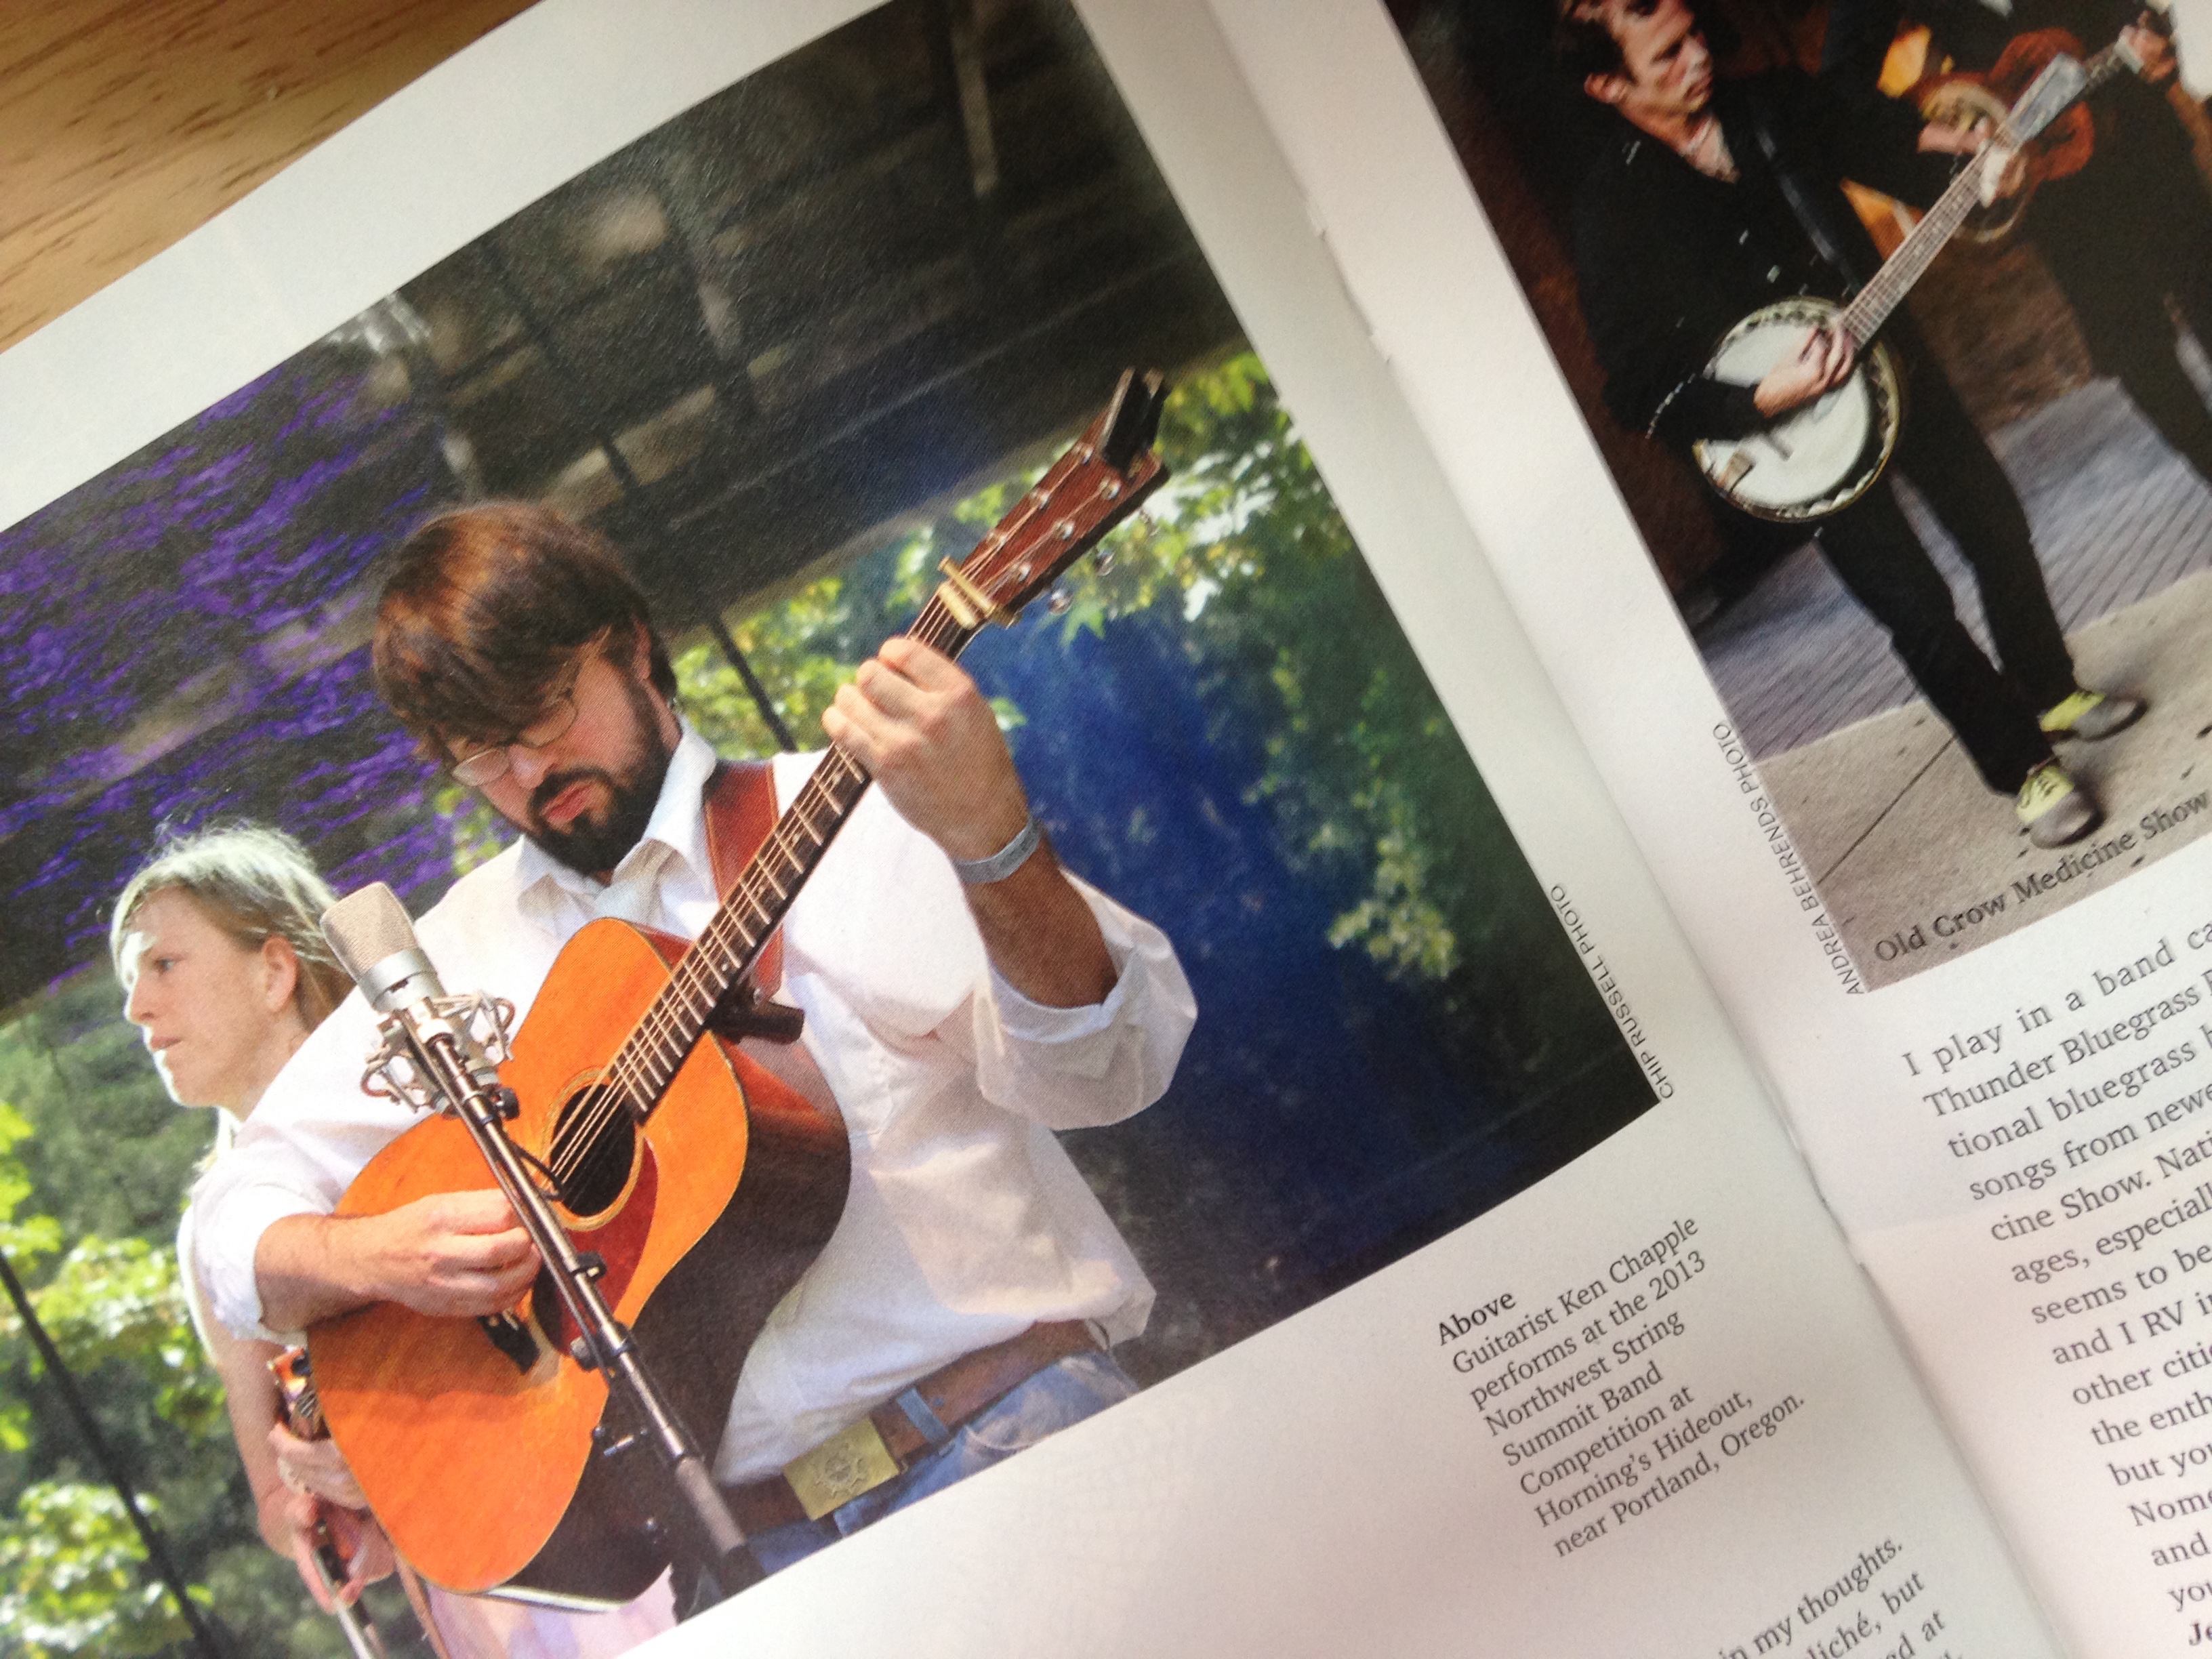 Ken In Acoustic Guitar Magazine, April 2015